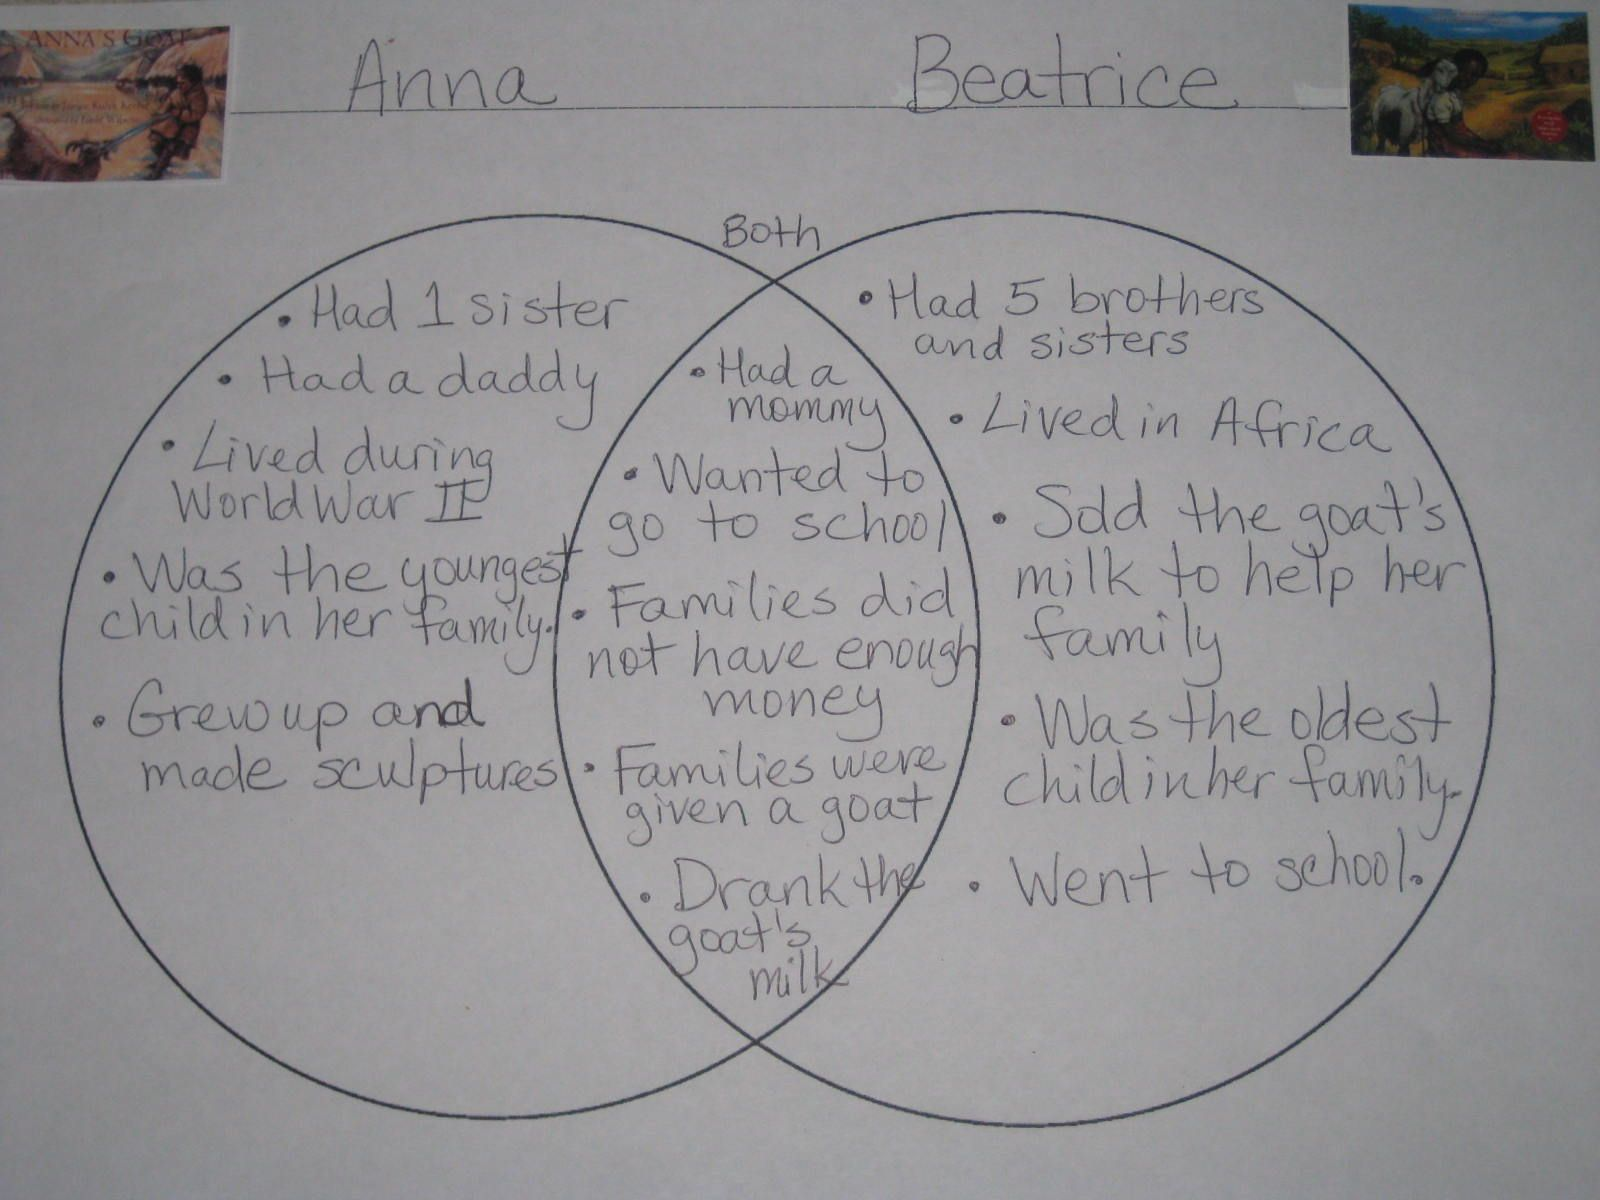 hight resolution of for goat or farm animal unit read these two non fiction books anna s goat by janice keefer beatrice s goat by page mcbrier then do a venn diagram for